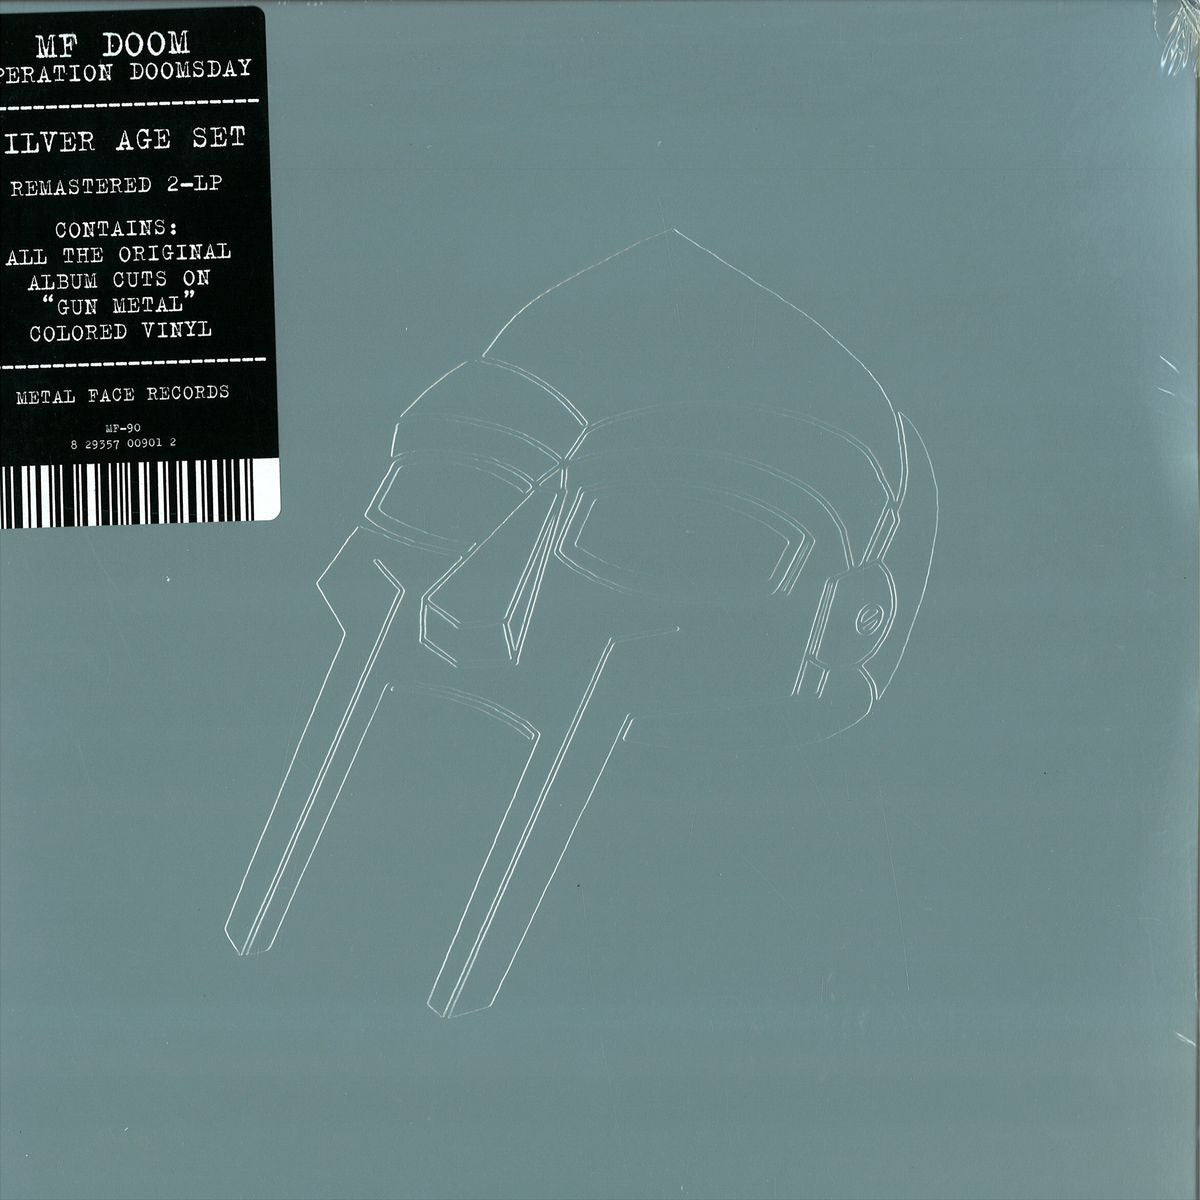 MF Doom - Operation Doomsday - Unearthed Sounds